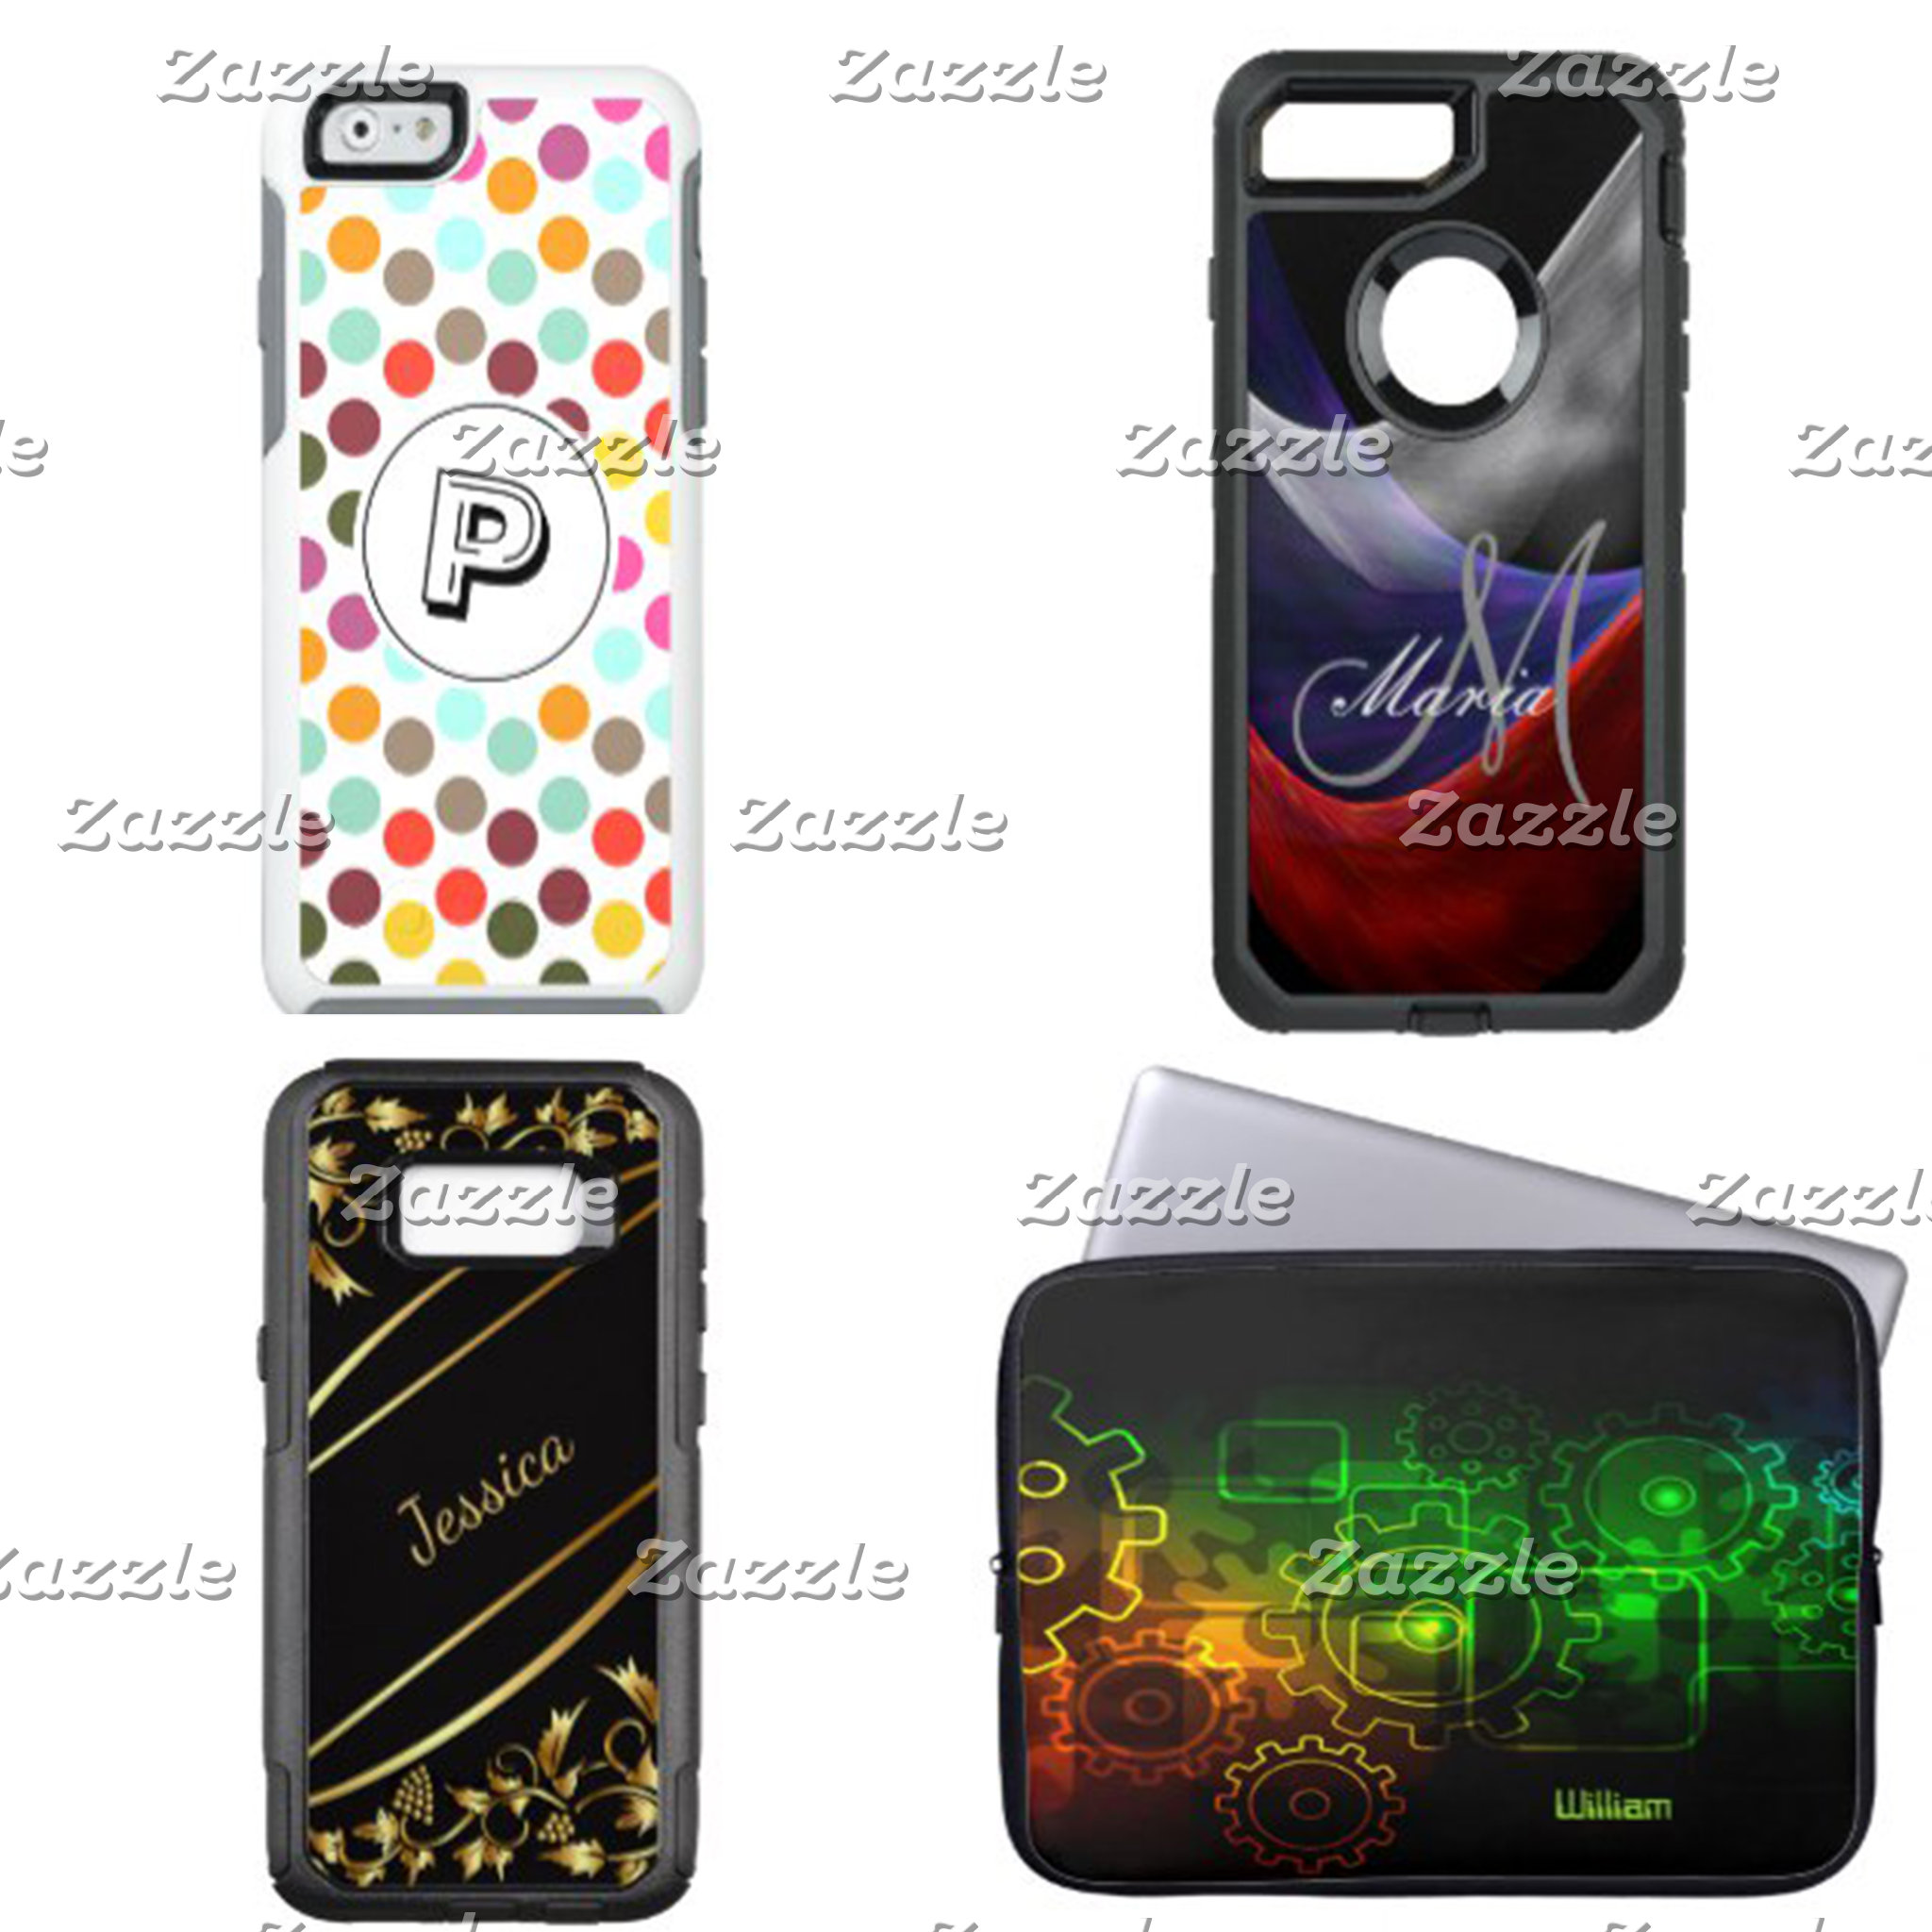 Phone and Ipad cases